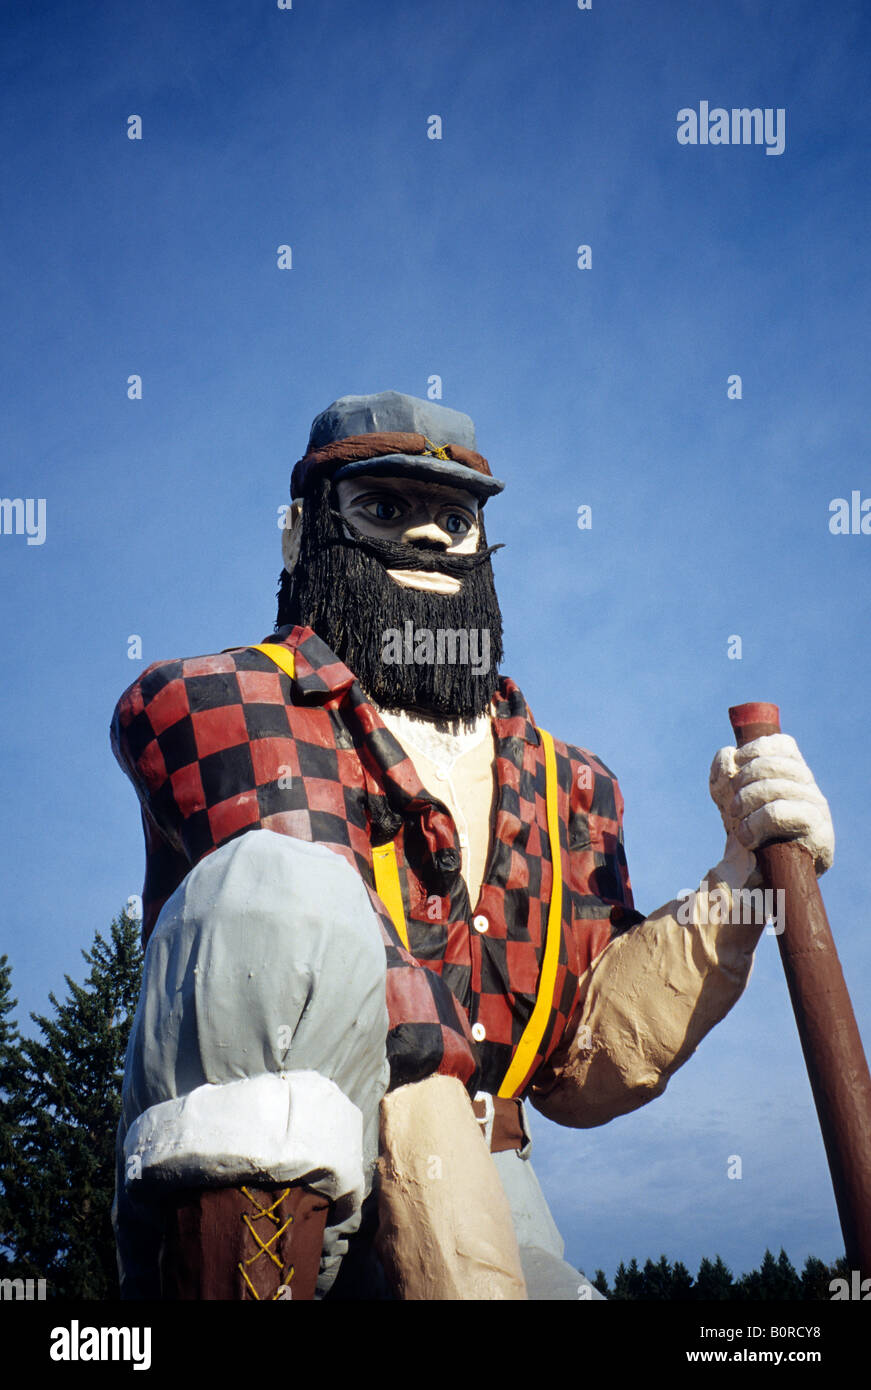 PAUL BUNYAN STATUE AT THE PAUL BUNYAN HISTORICAL MUSEUM IN AKELEY, NORTH-CENTRAL MINNESOTA.  FALL. - Stock Image